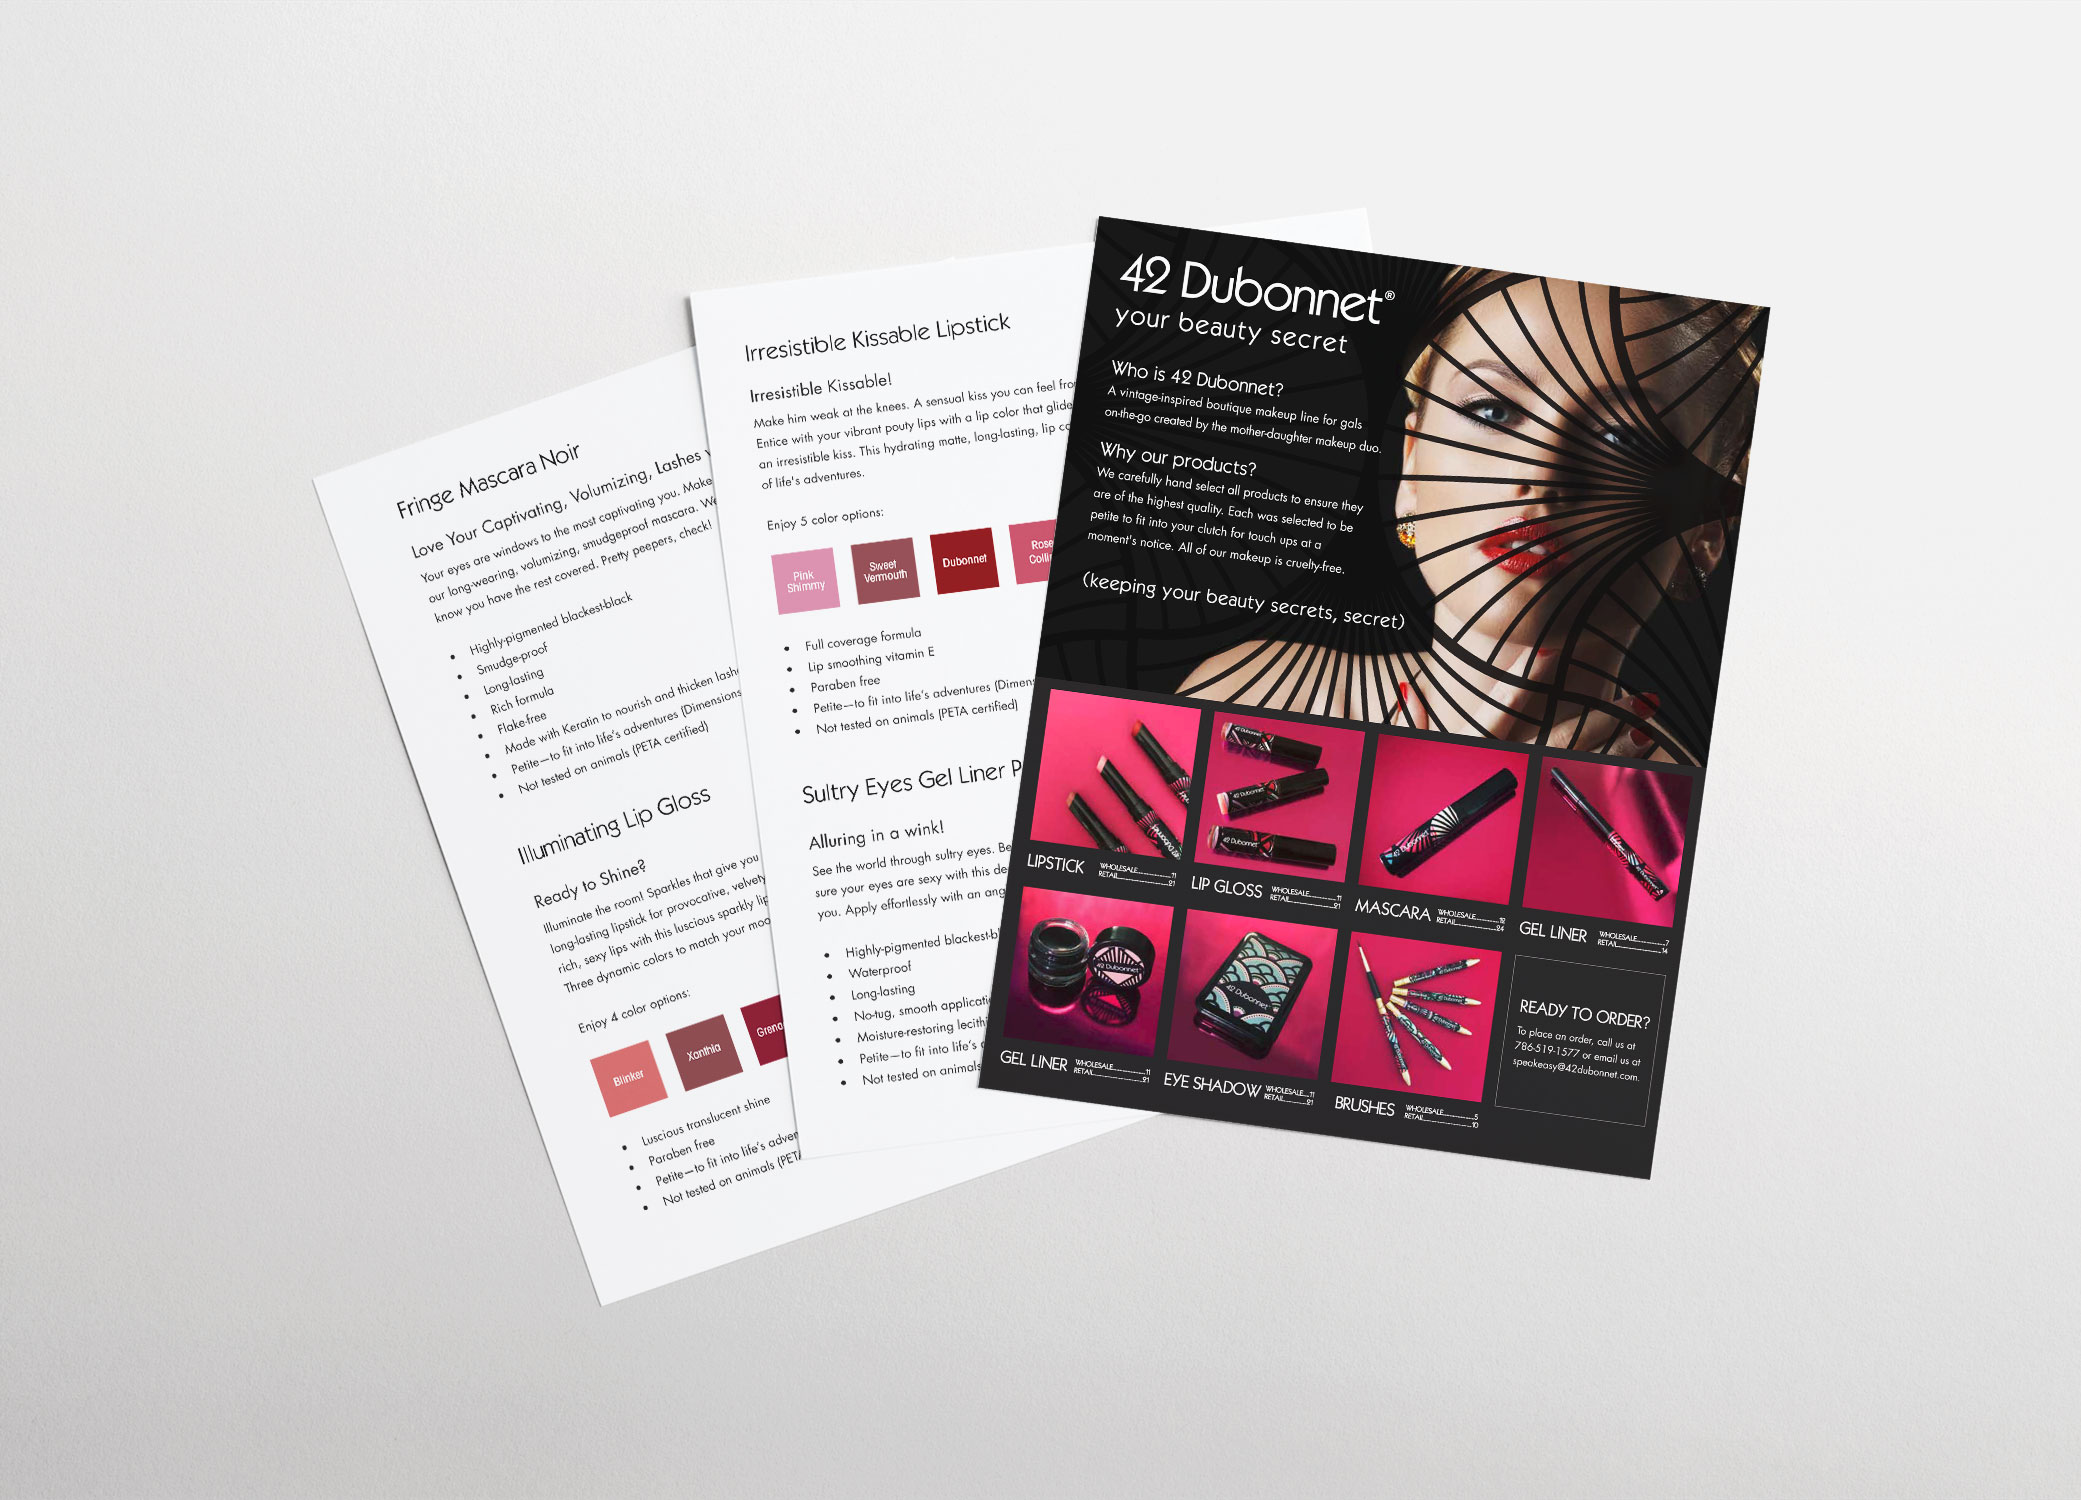 Three 42 Dubonnet makeup brand identity sell sheets showcasing some of their bestselling products in a fanned out view.